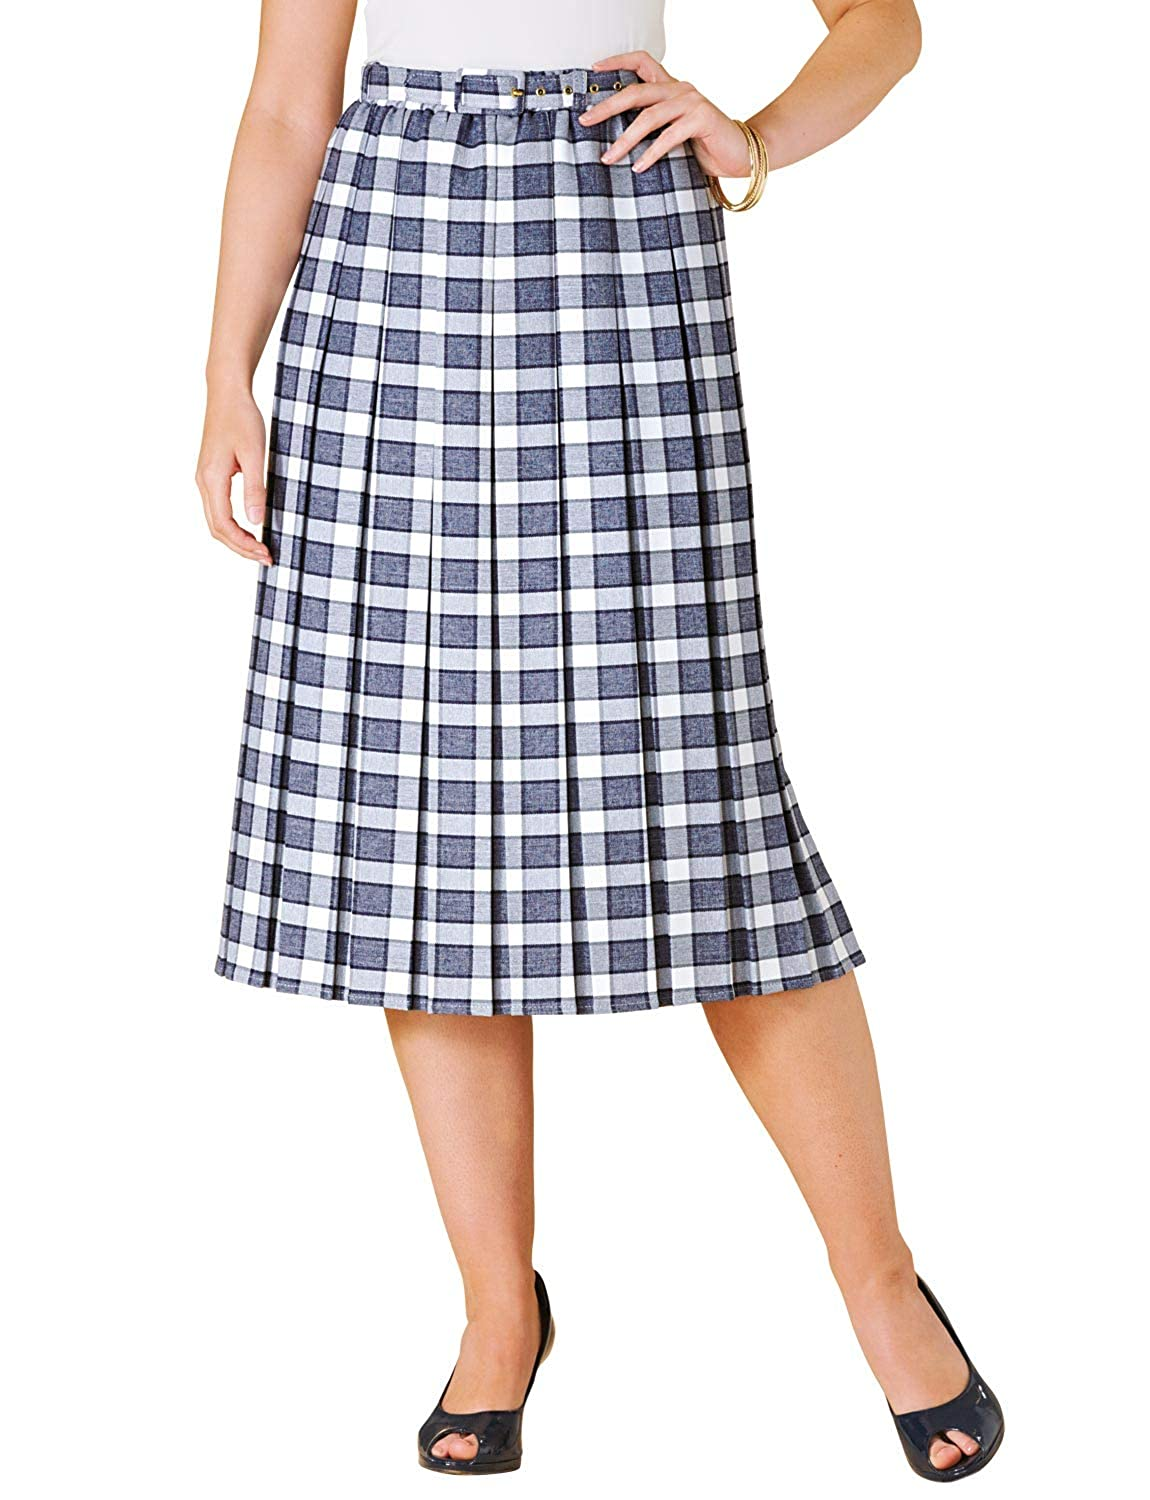 1940s Style Skirts- Vintage High Waisted Skirts Chums Ladies Womens Pleated Skirt 25 Inches £34.00 AT vintagedancer.com